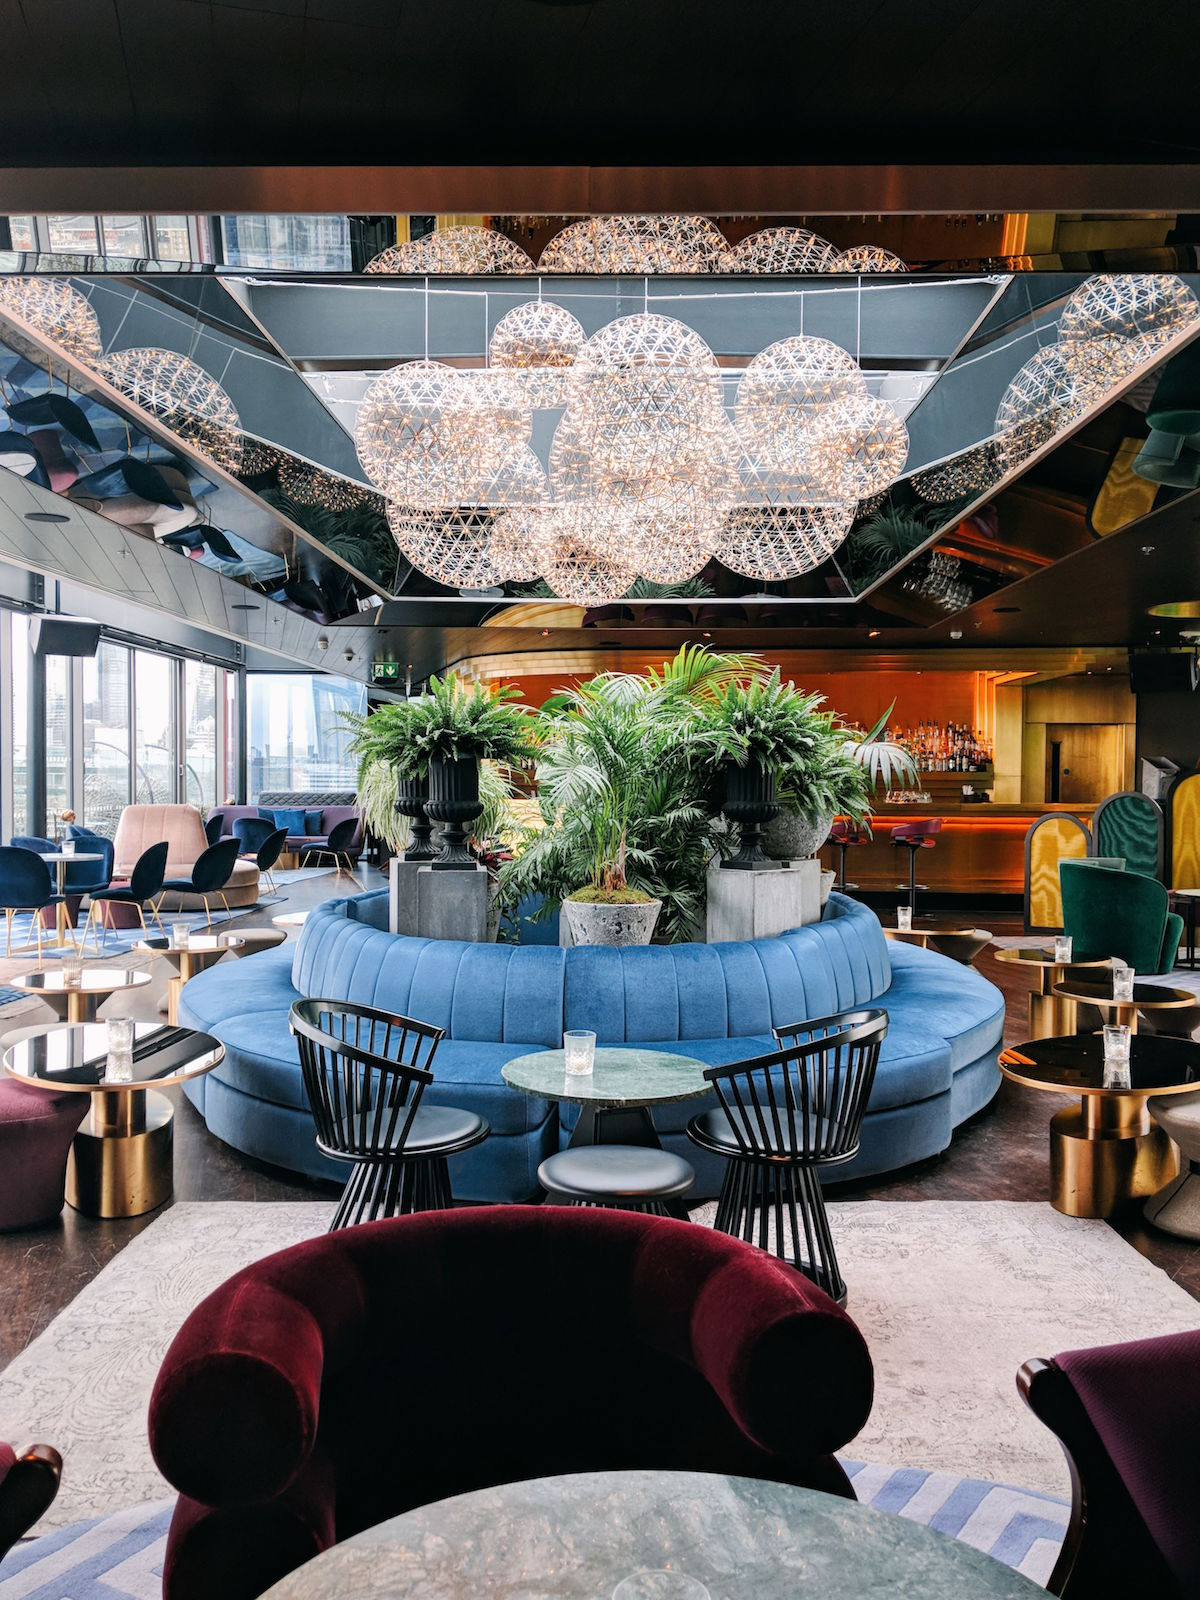 The chic & sleek interiors of the Rumpus Room rooftop bar at the Mondrian London